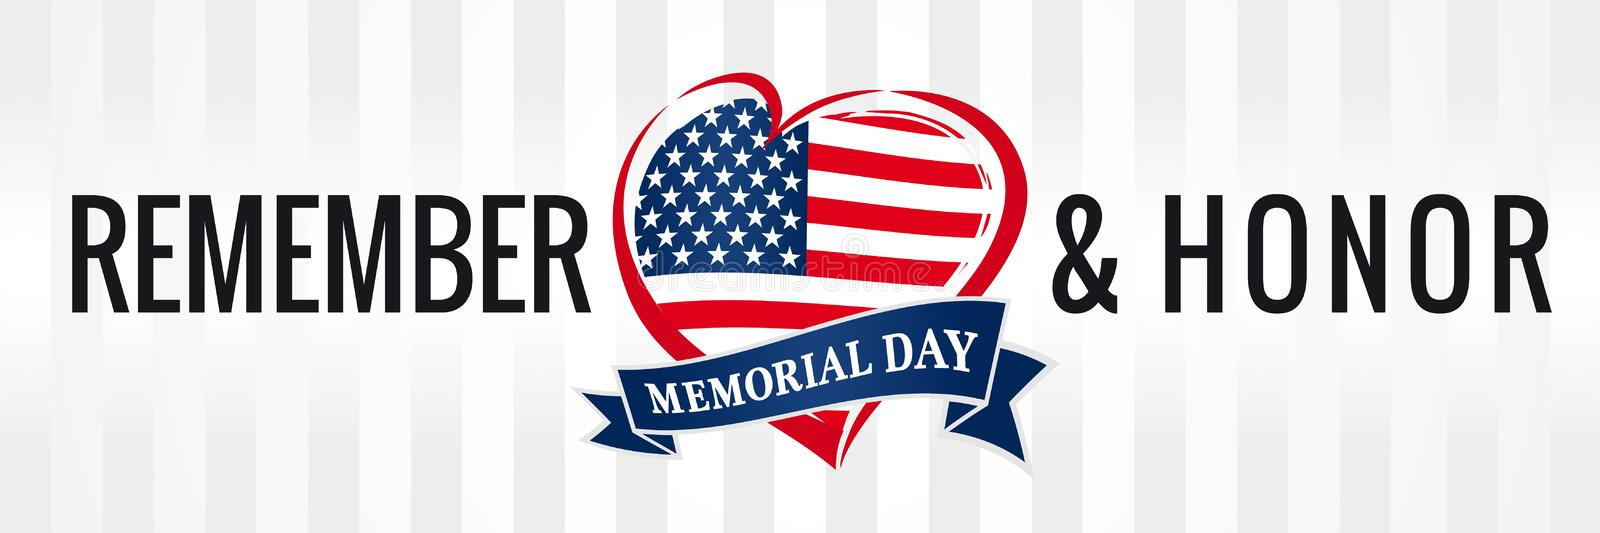 Memorial day, remember & honor with USA flag in heart banner royalty free illustration